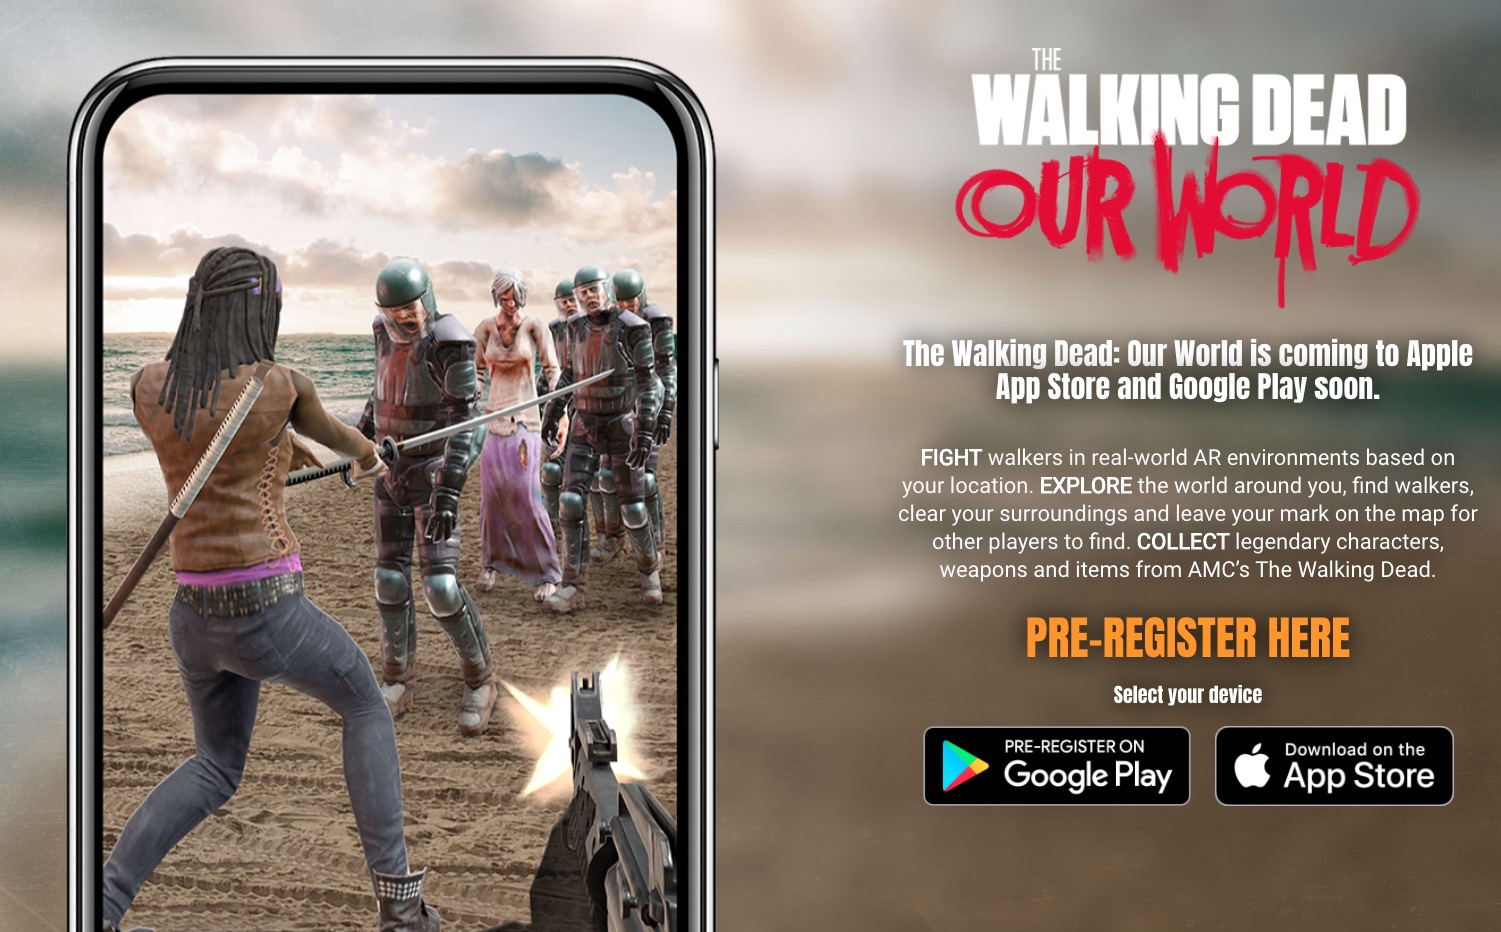 dating.com video game app store online